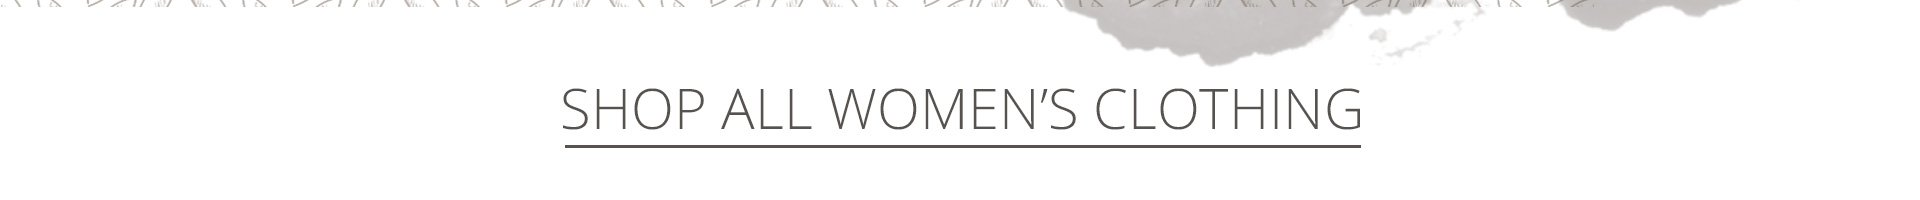 Shop All Women's Clothing